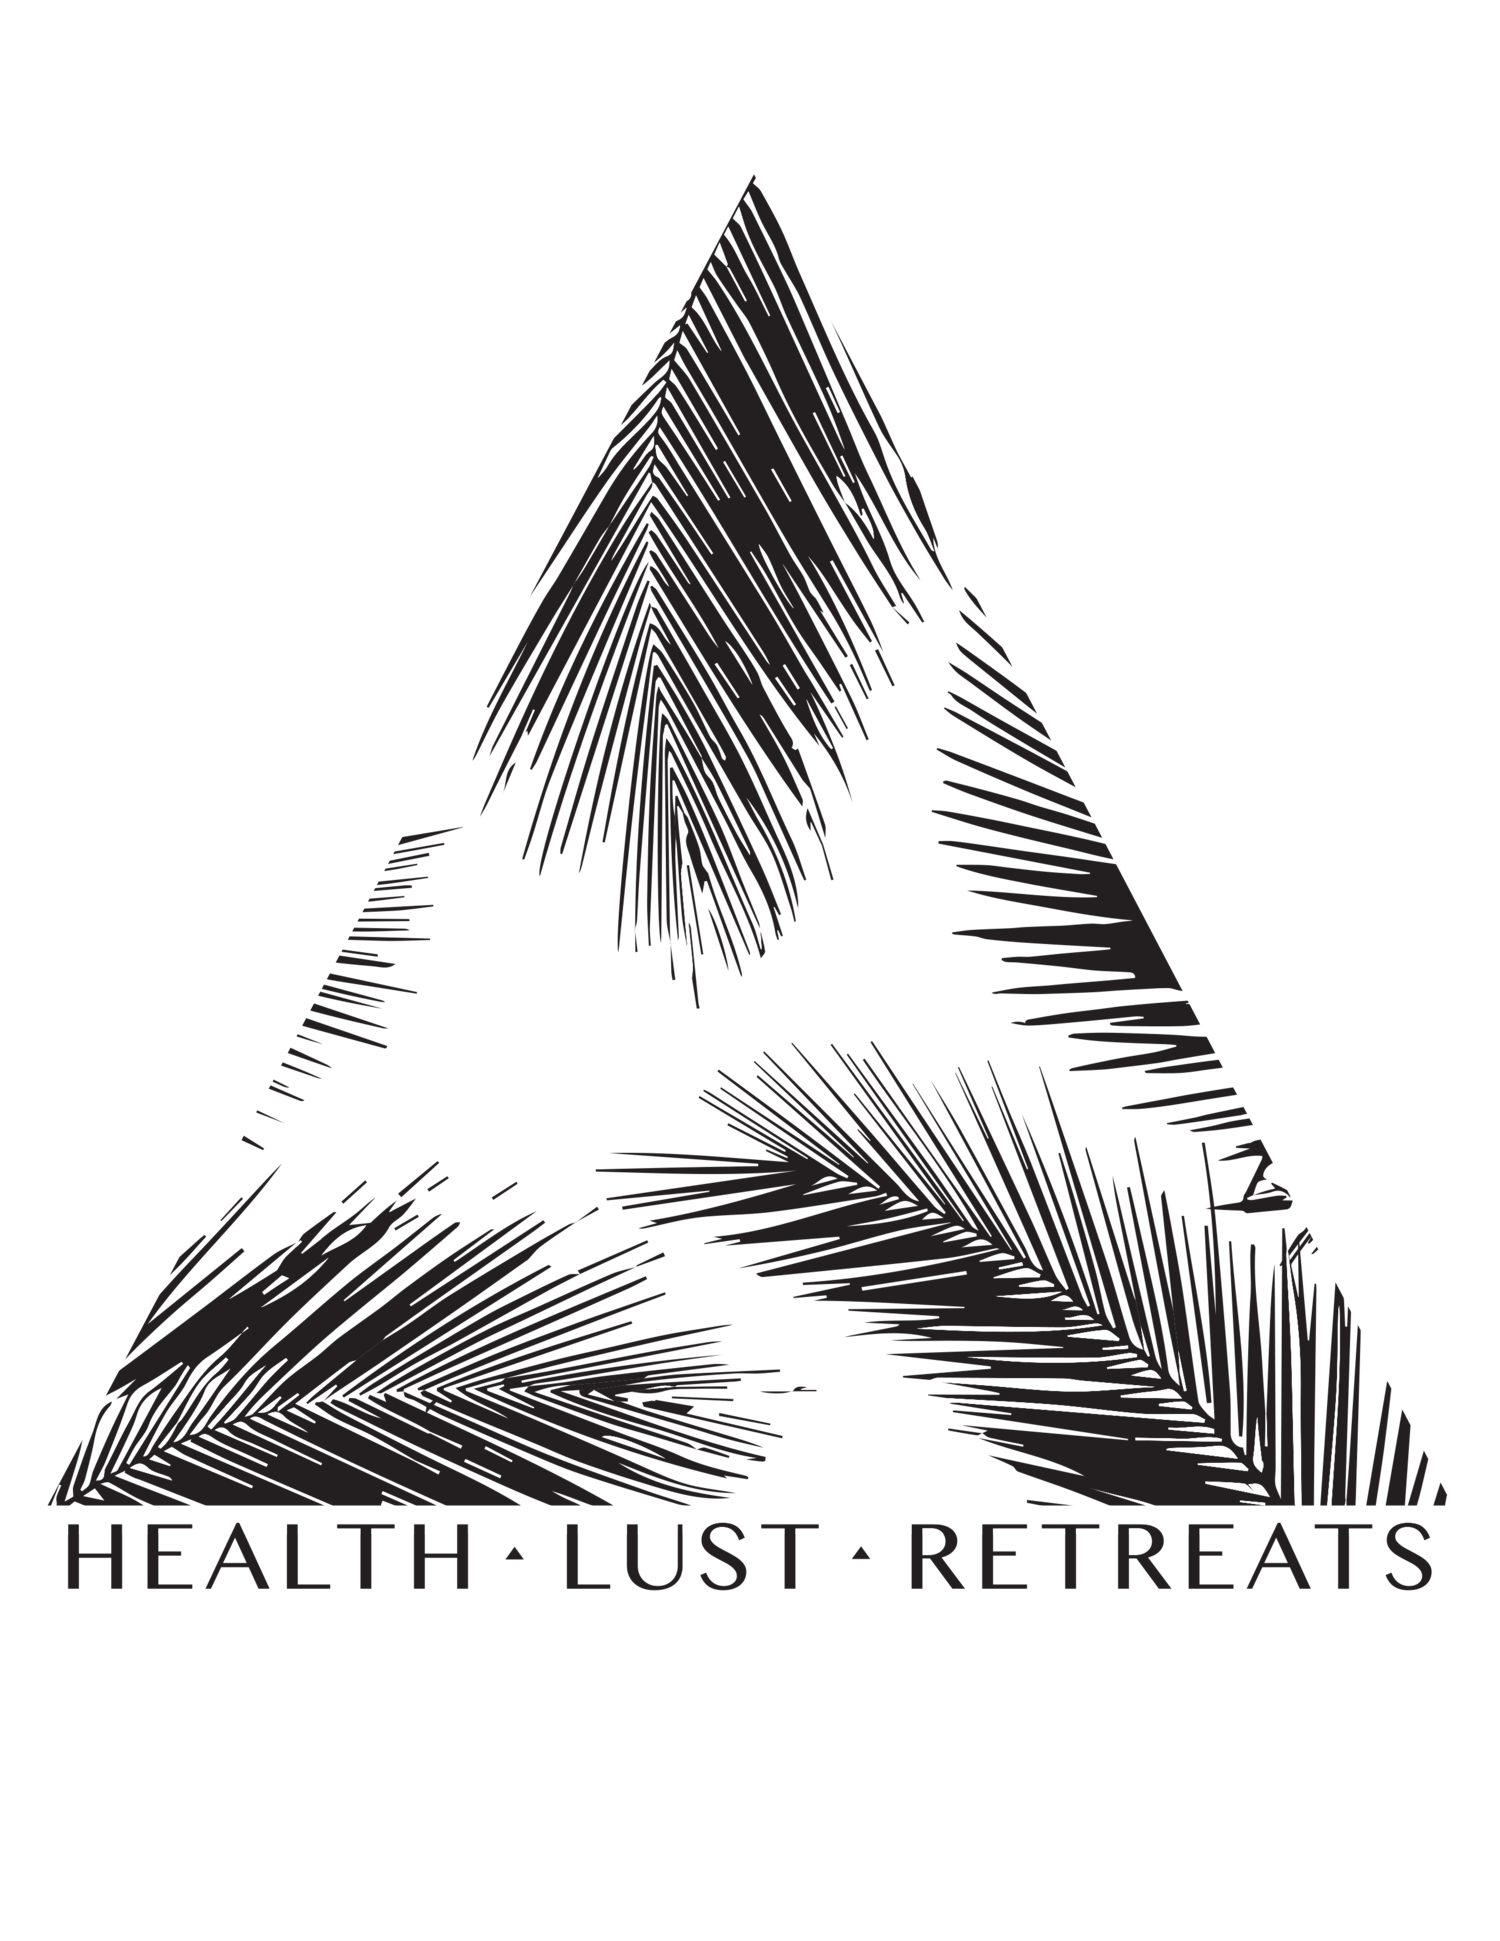 Health Lust Retreats